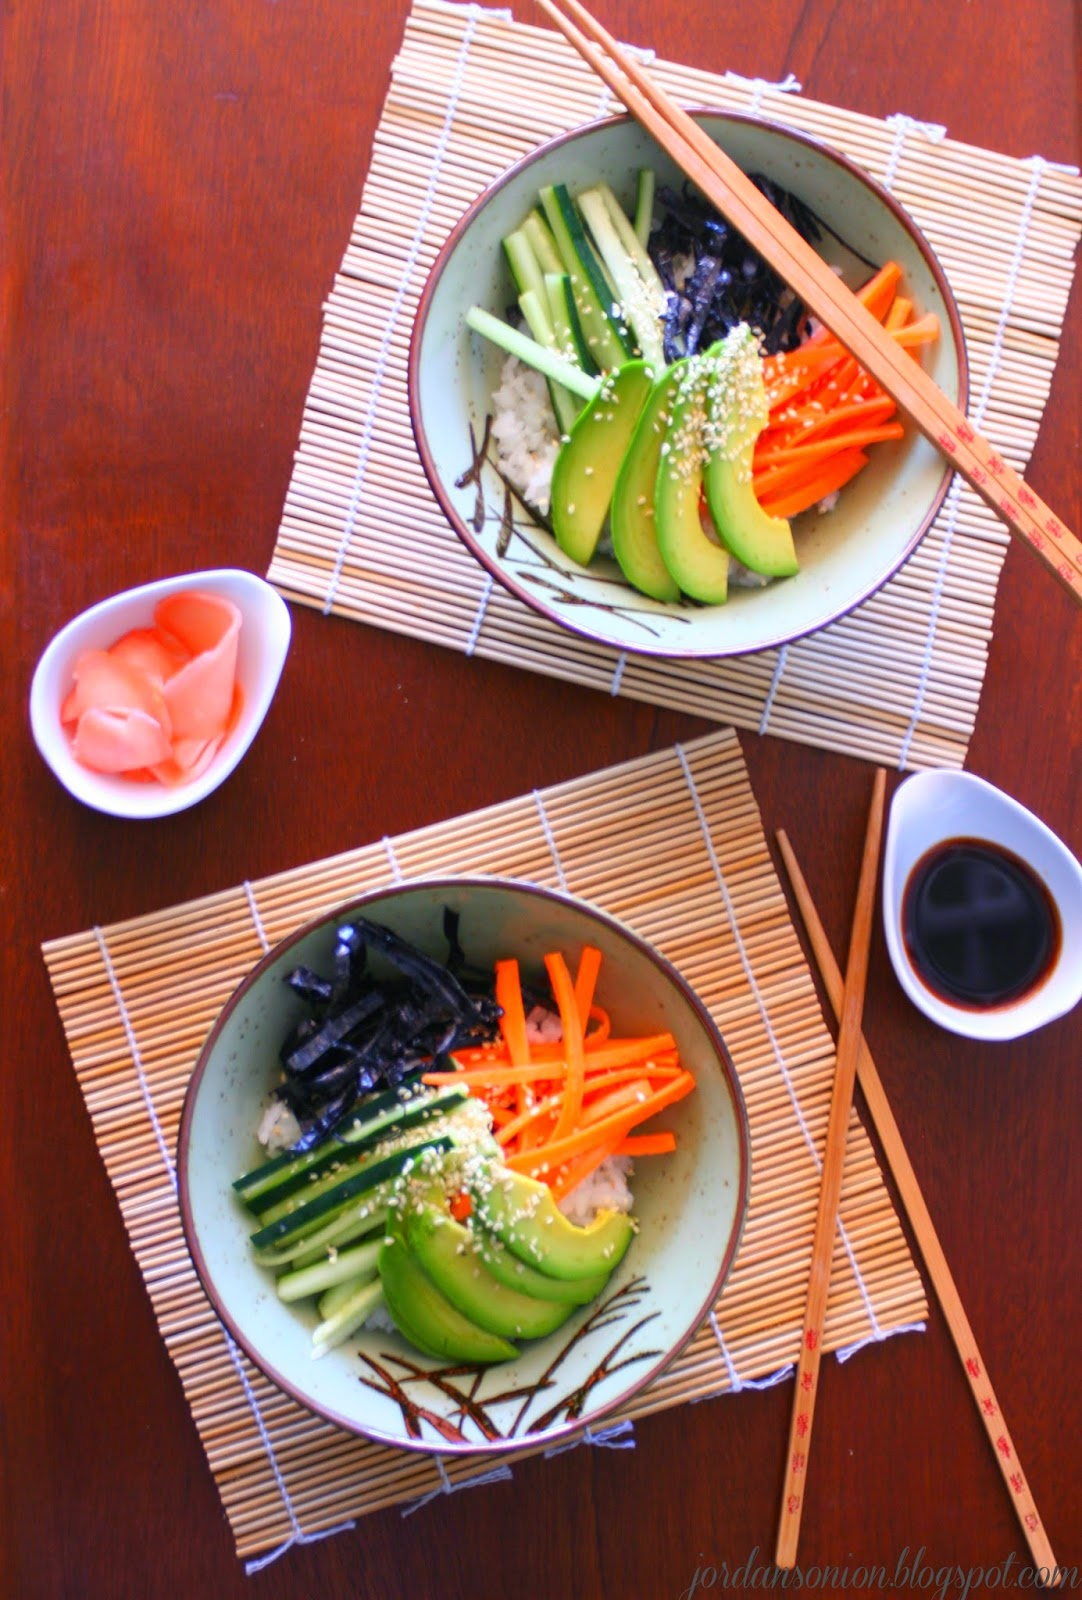 Jordan's Onion: Deconstructed Sushi Bowl